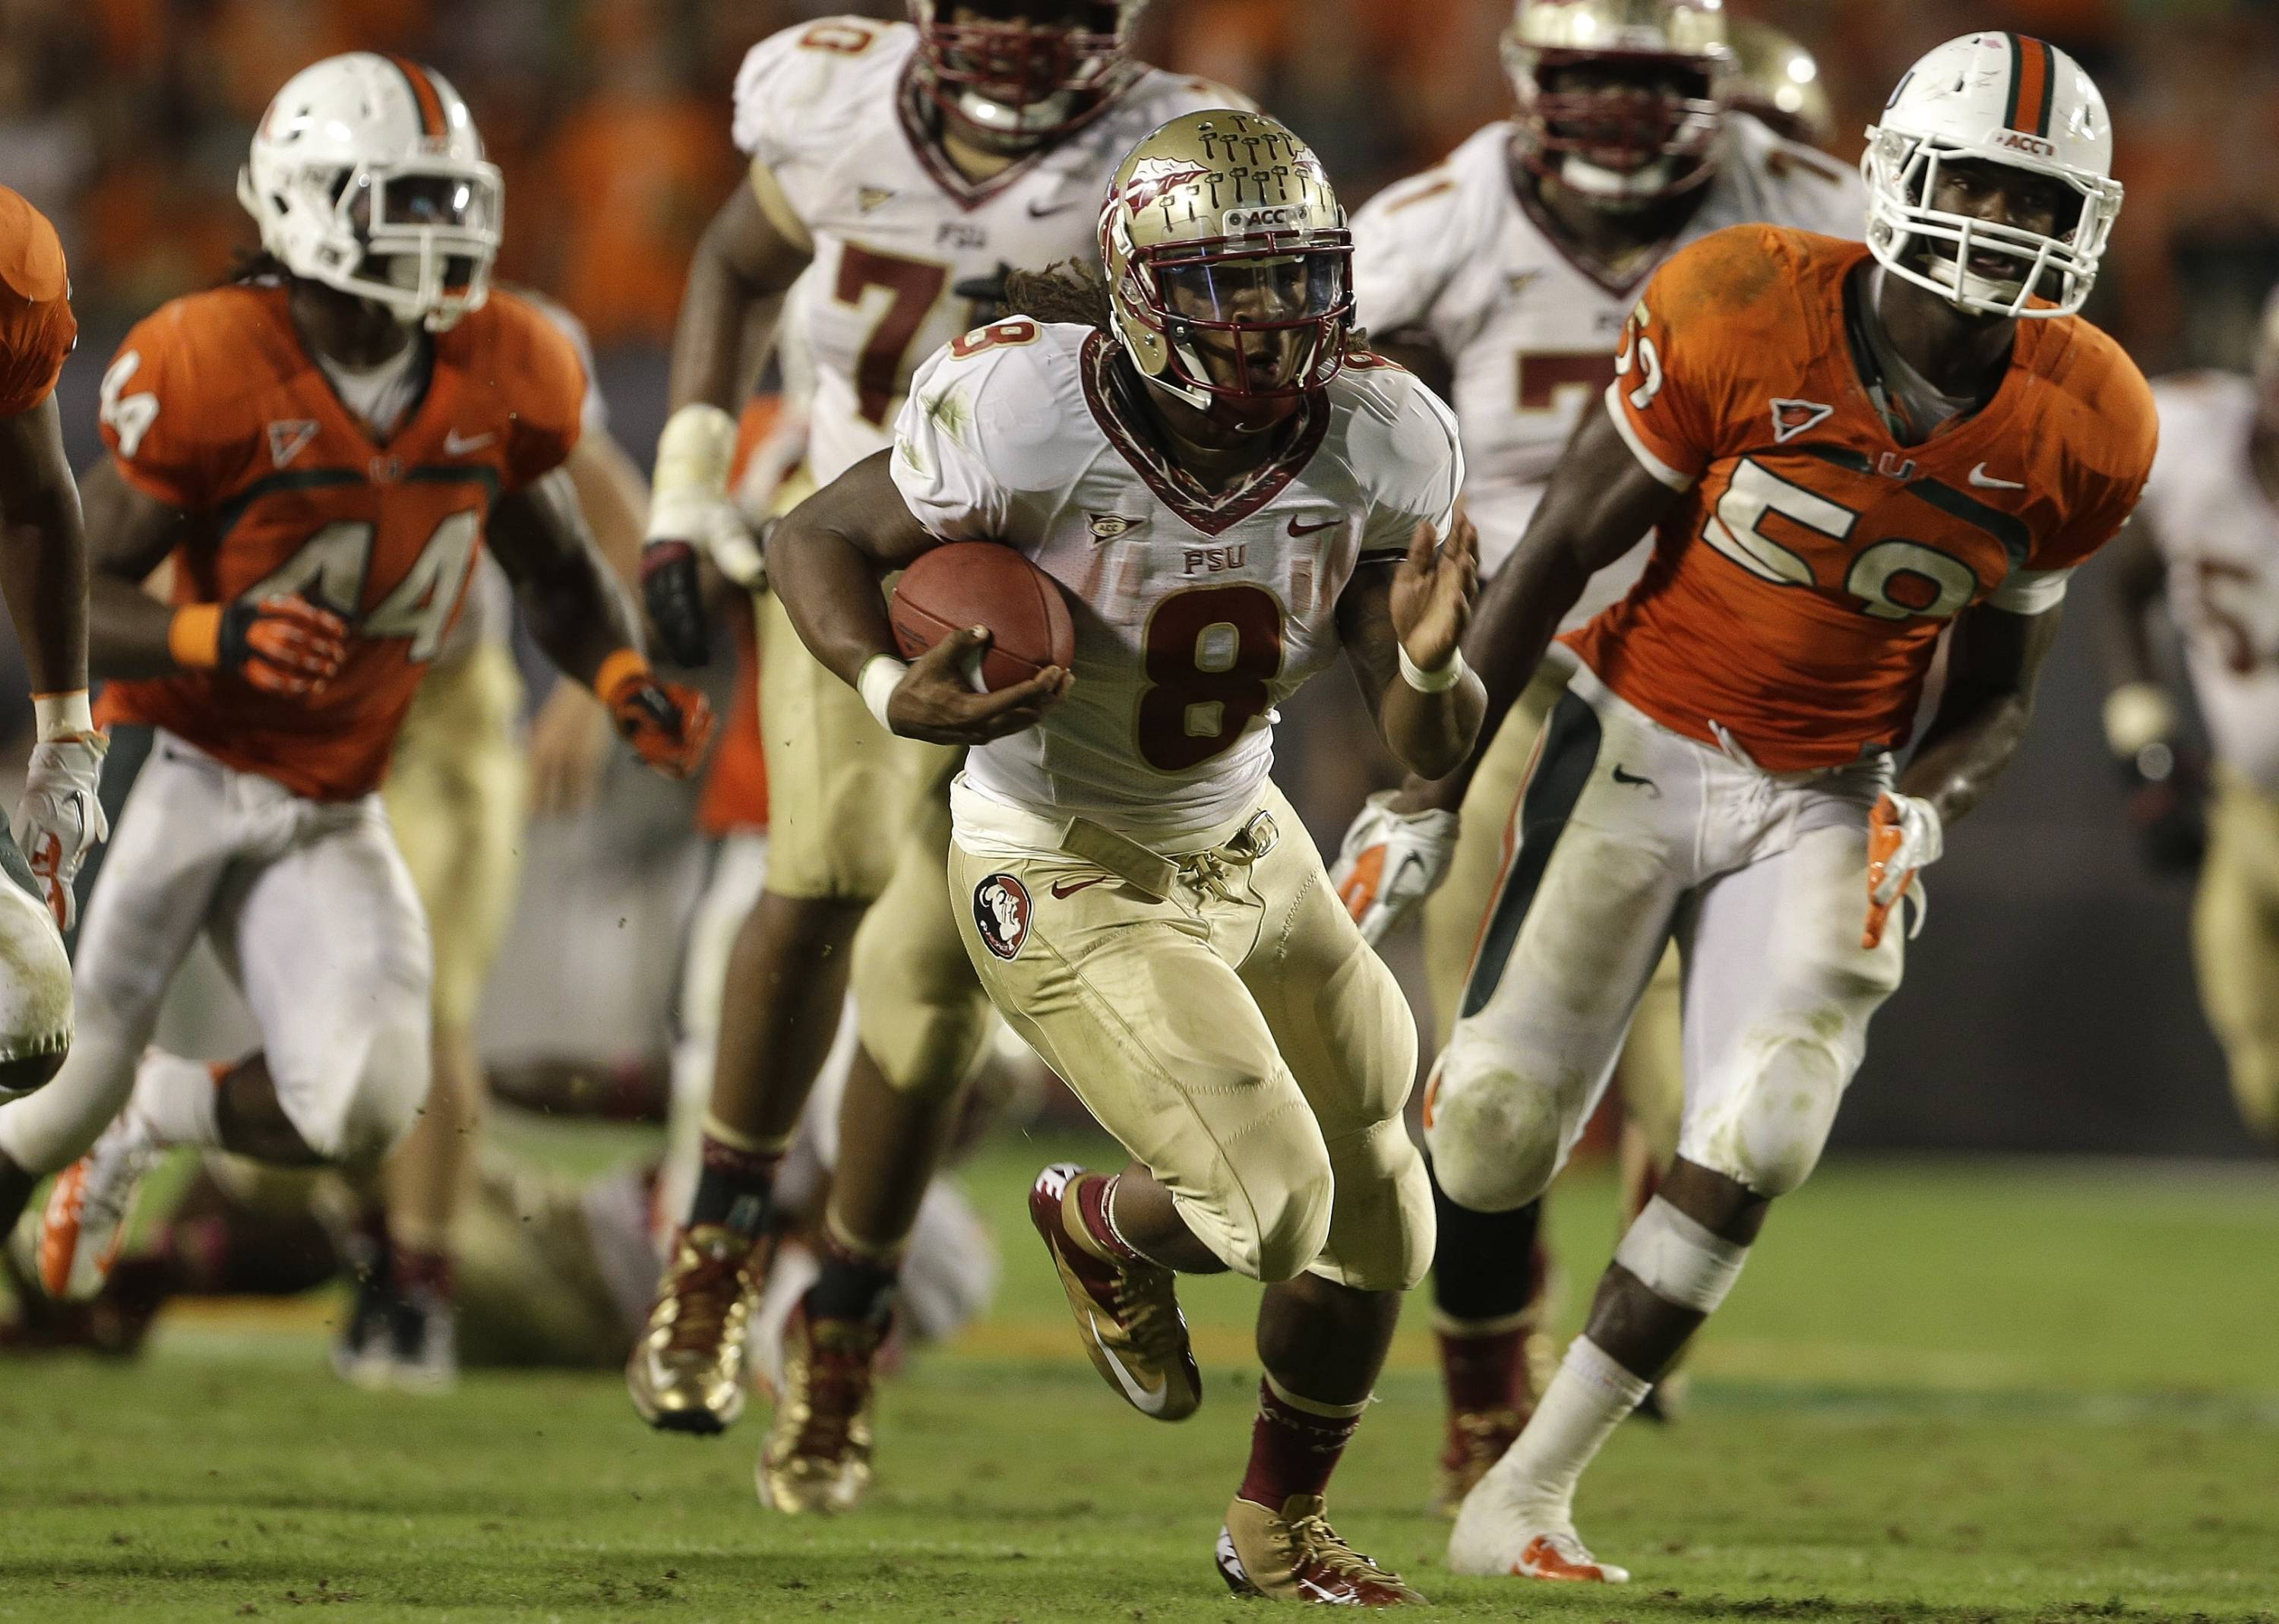 Florida State running back Devonta Freeman (8) runs for a first down past Miami linebacker Jimmy Gaines (59) during the second half of an NCAA college football game on Saturday, Oct. 20, 2012, in Miami. (AP Photo/Lynne Sladky)